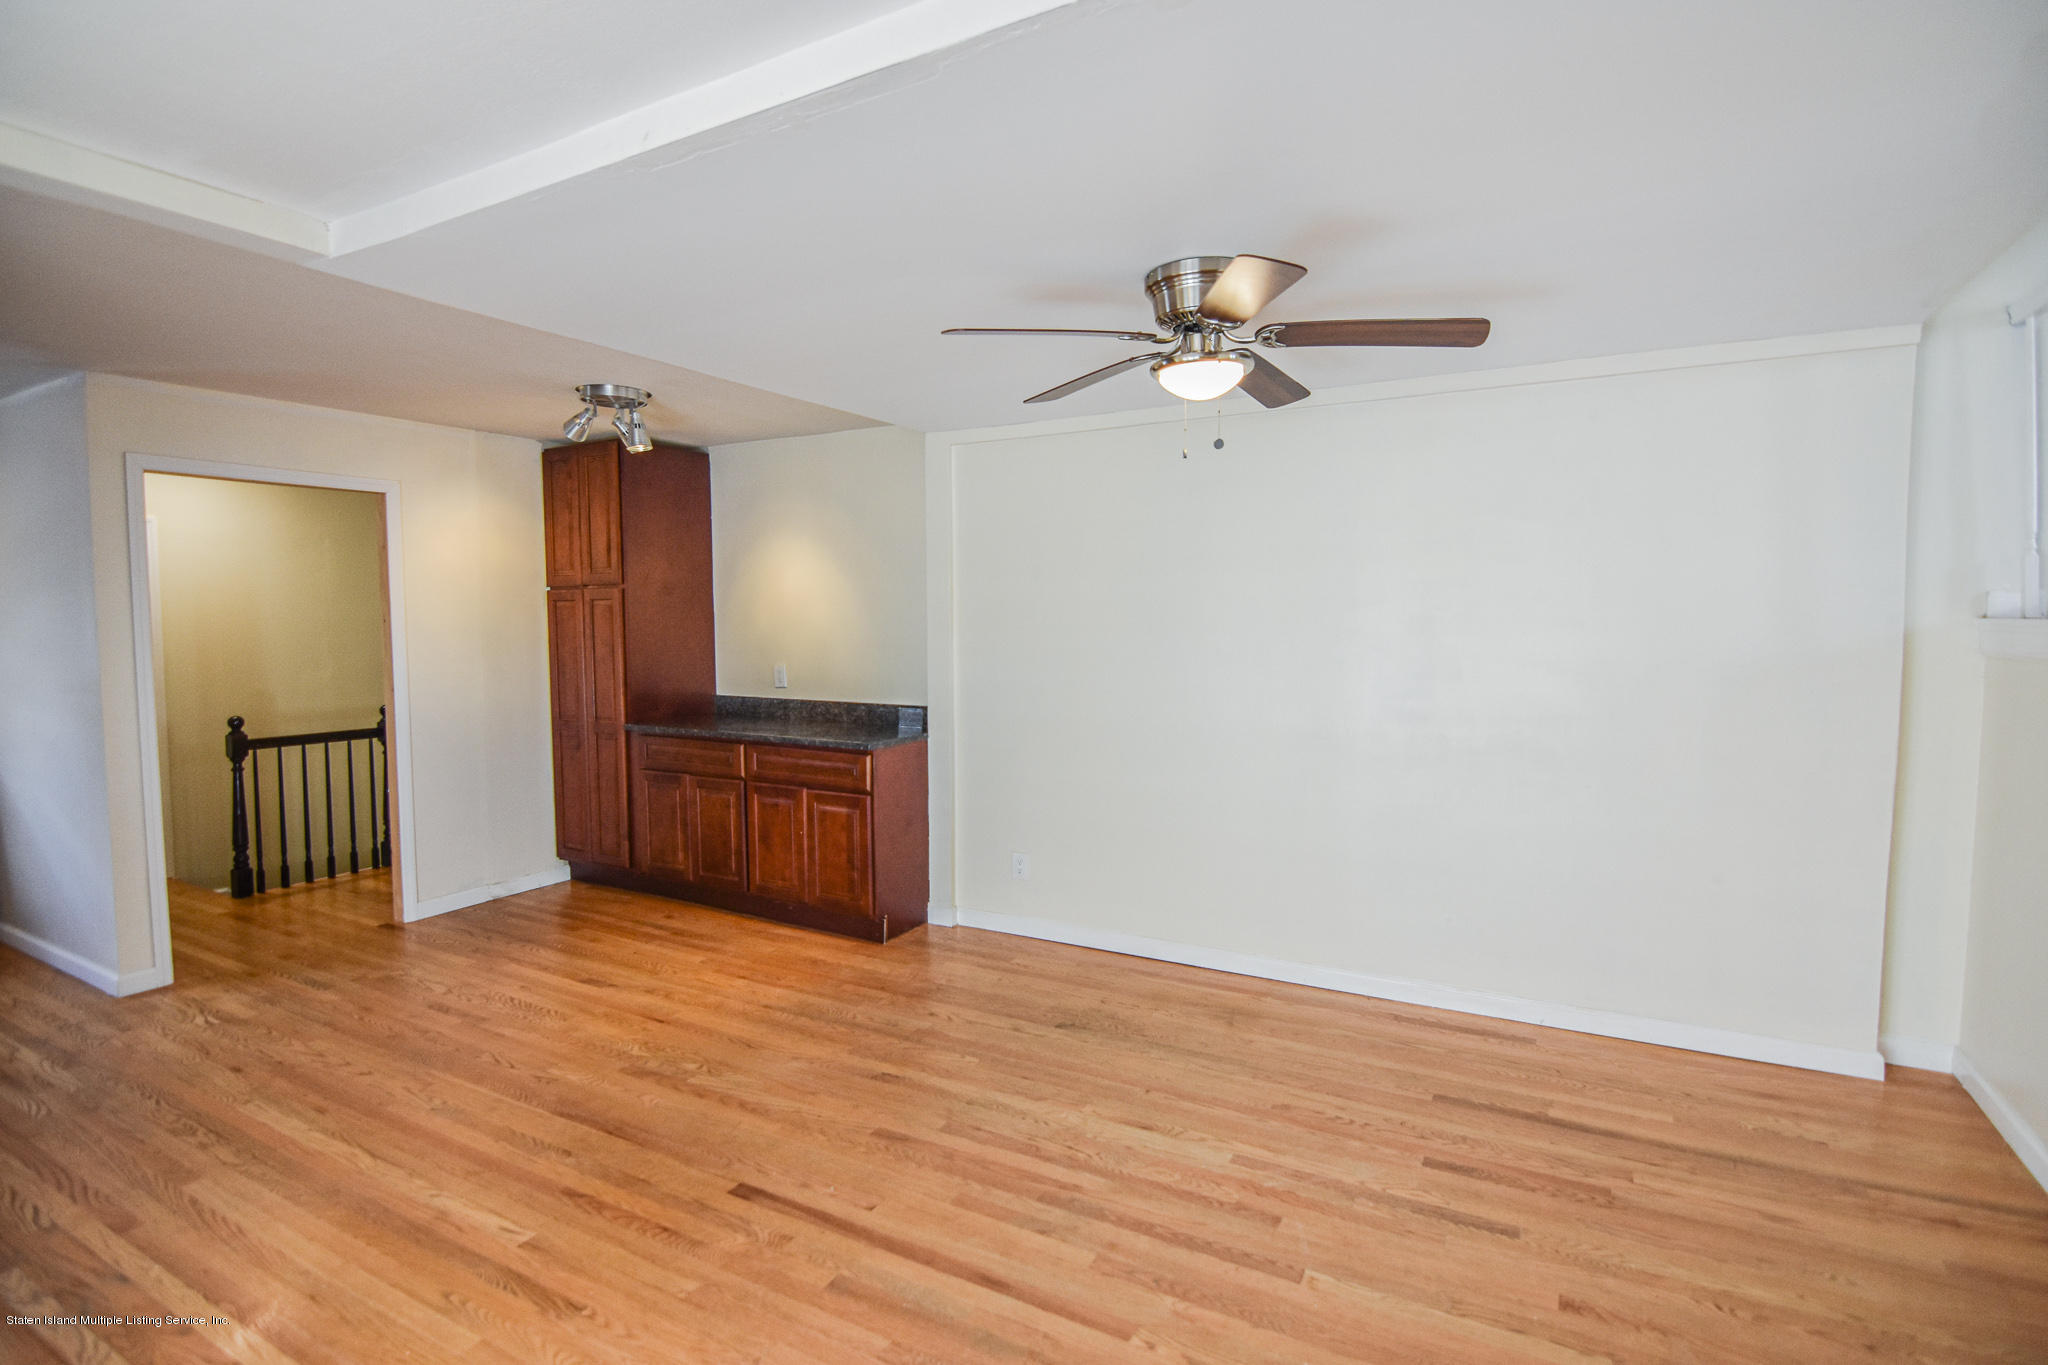 Single Family - Semi-Attached 12 Ebey Lane  Staten Island, NY 10312, MLS-1131132-3